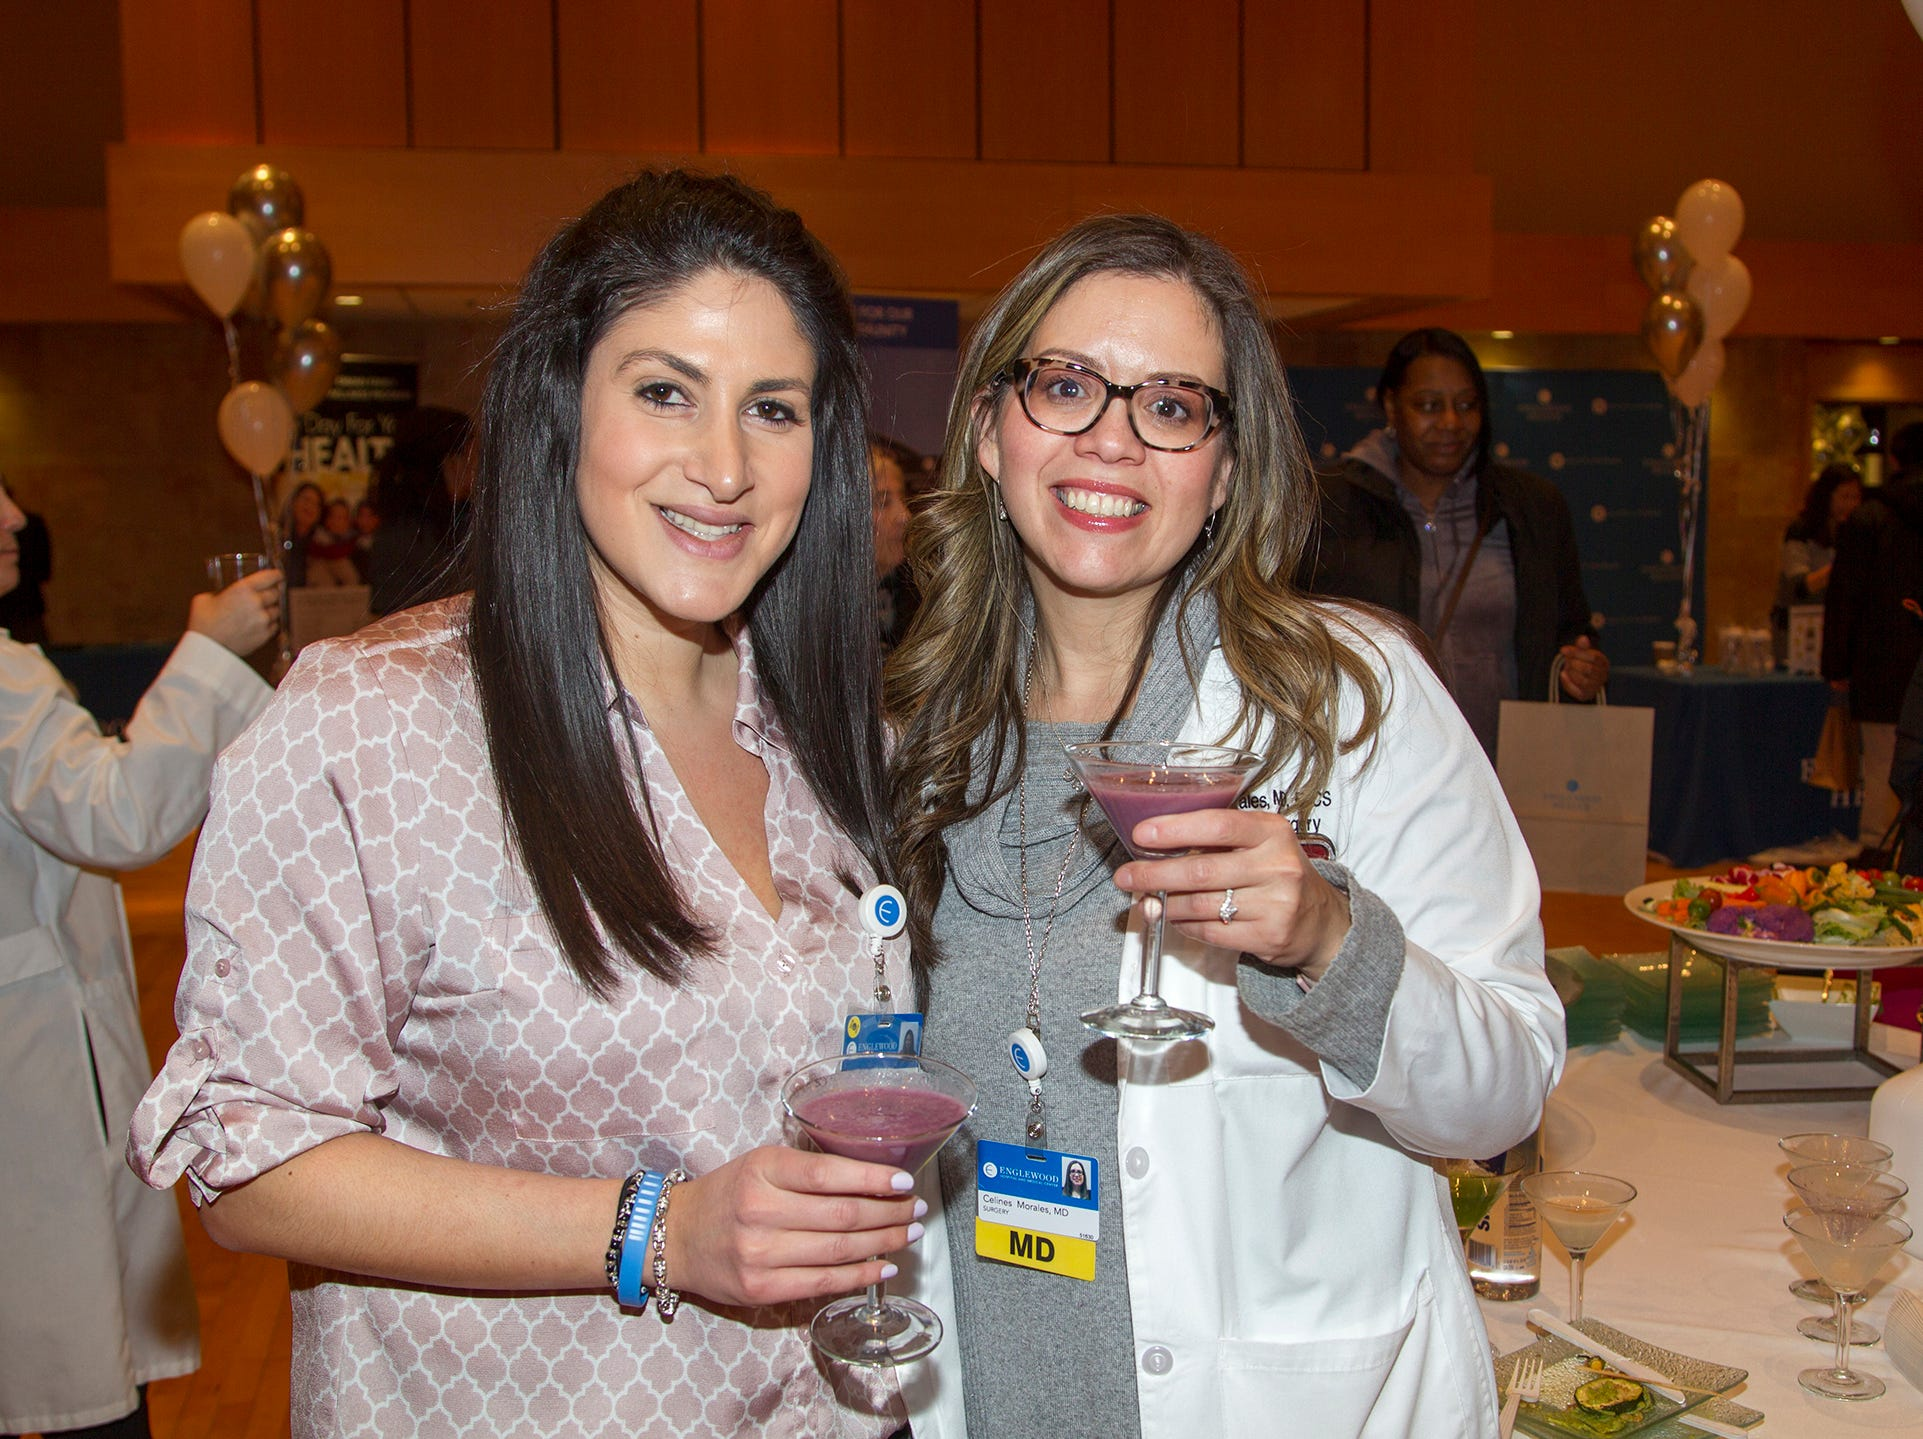 Maria Paschalidis MD, Celines Morales MD. Englewood Health and Kaplen JCC on the Palisades sponsored a Mind, Body, & Sole - a women's health & fitness social night at Kaplen JCC on the Palisades in Tenafly.02/13/2019